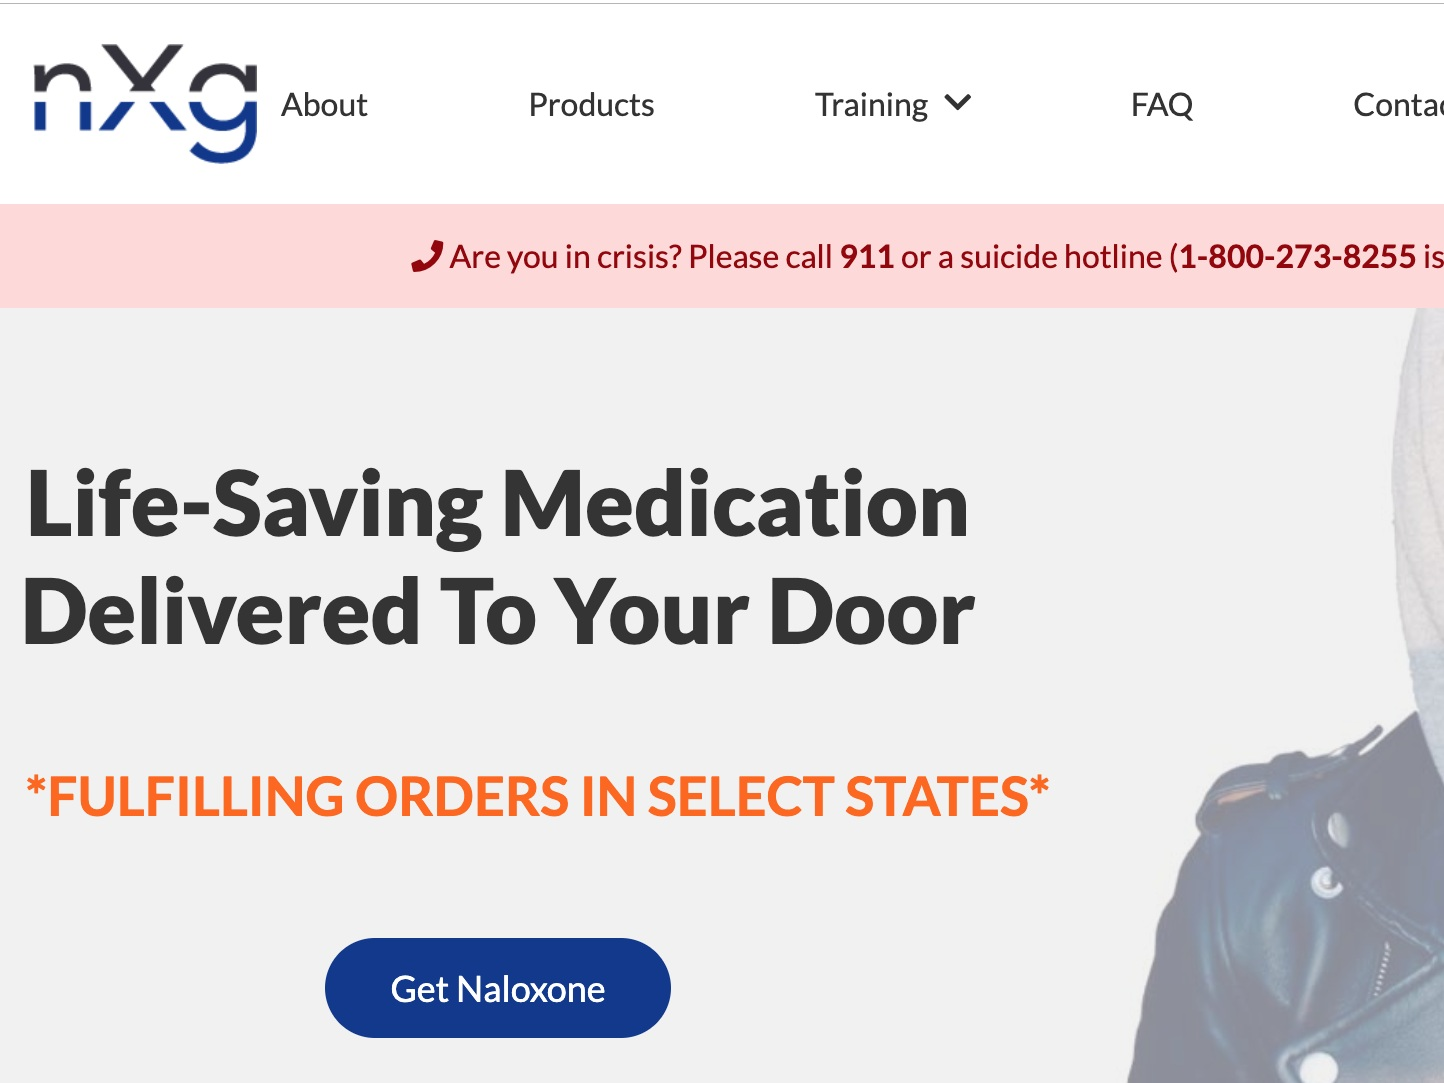 online naloxone pharmacy - Naloxone Exchange by Script Health is an online naloxone-specific pharmacy operating in the state of Texas. Naloxone Exchange provides intramuscular, intranasal, and auto-injector formulations of naloxone.